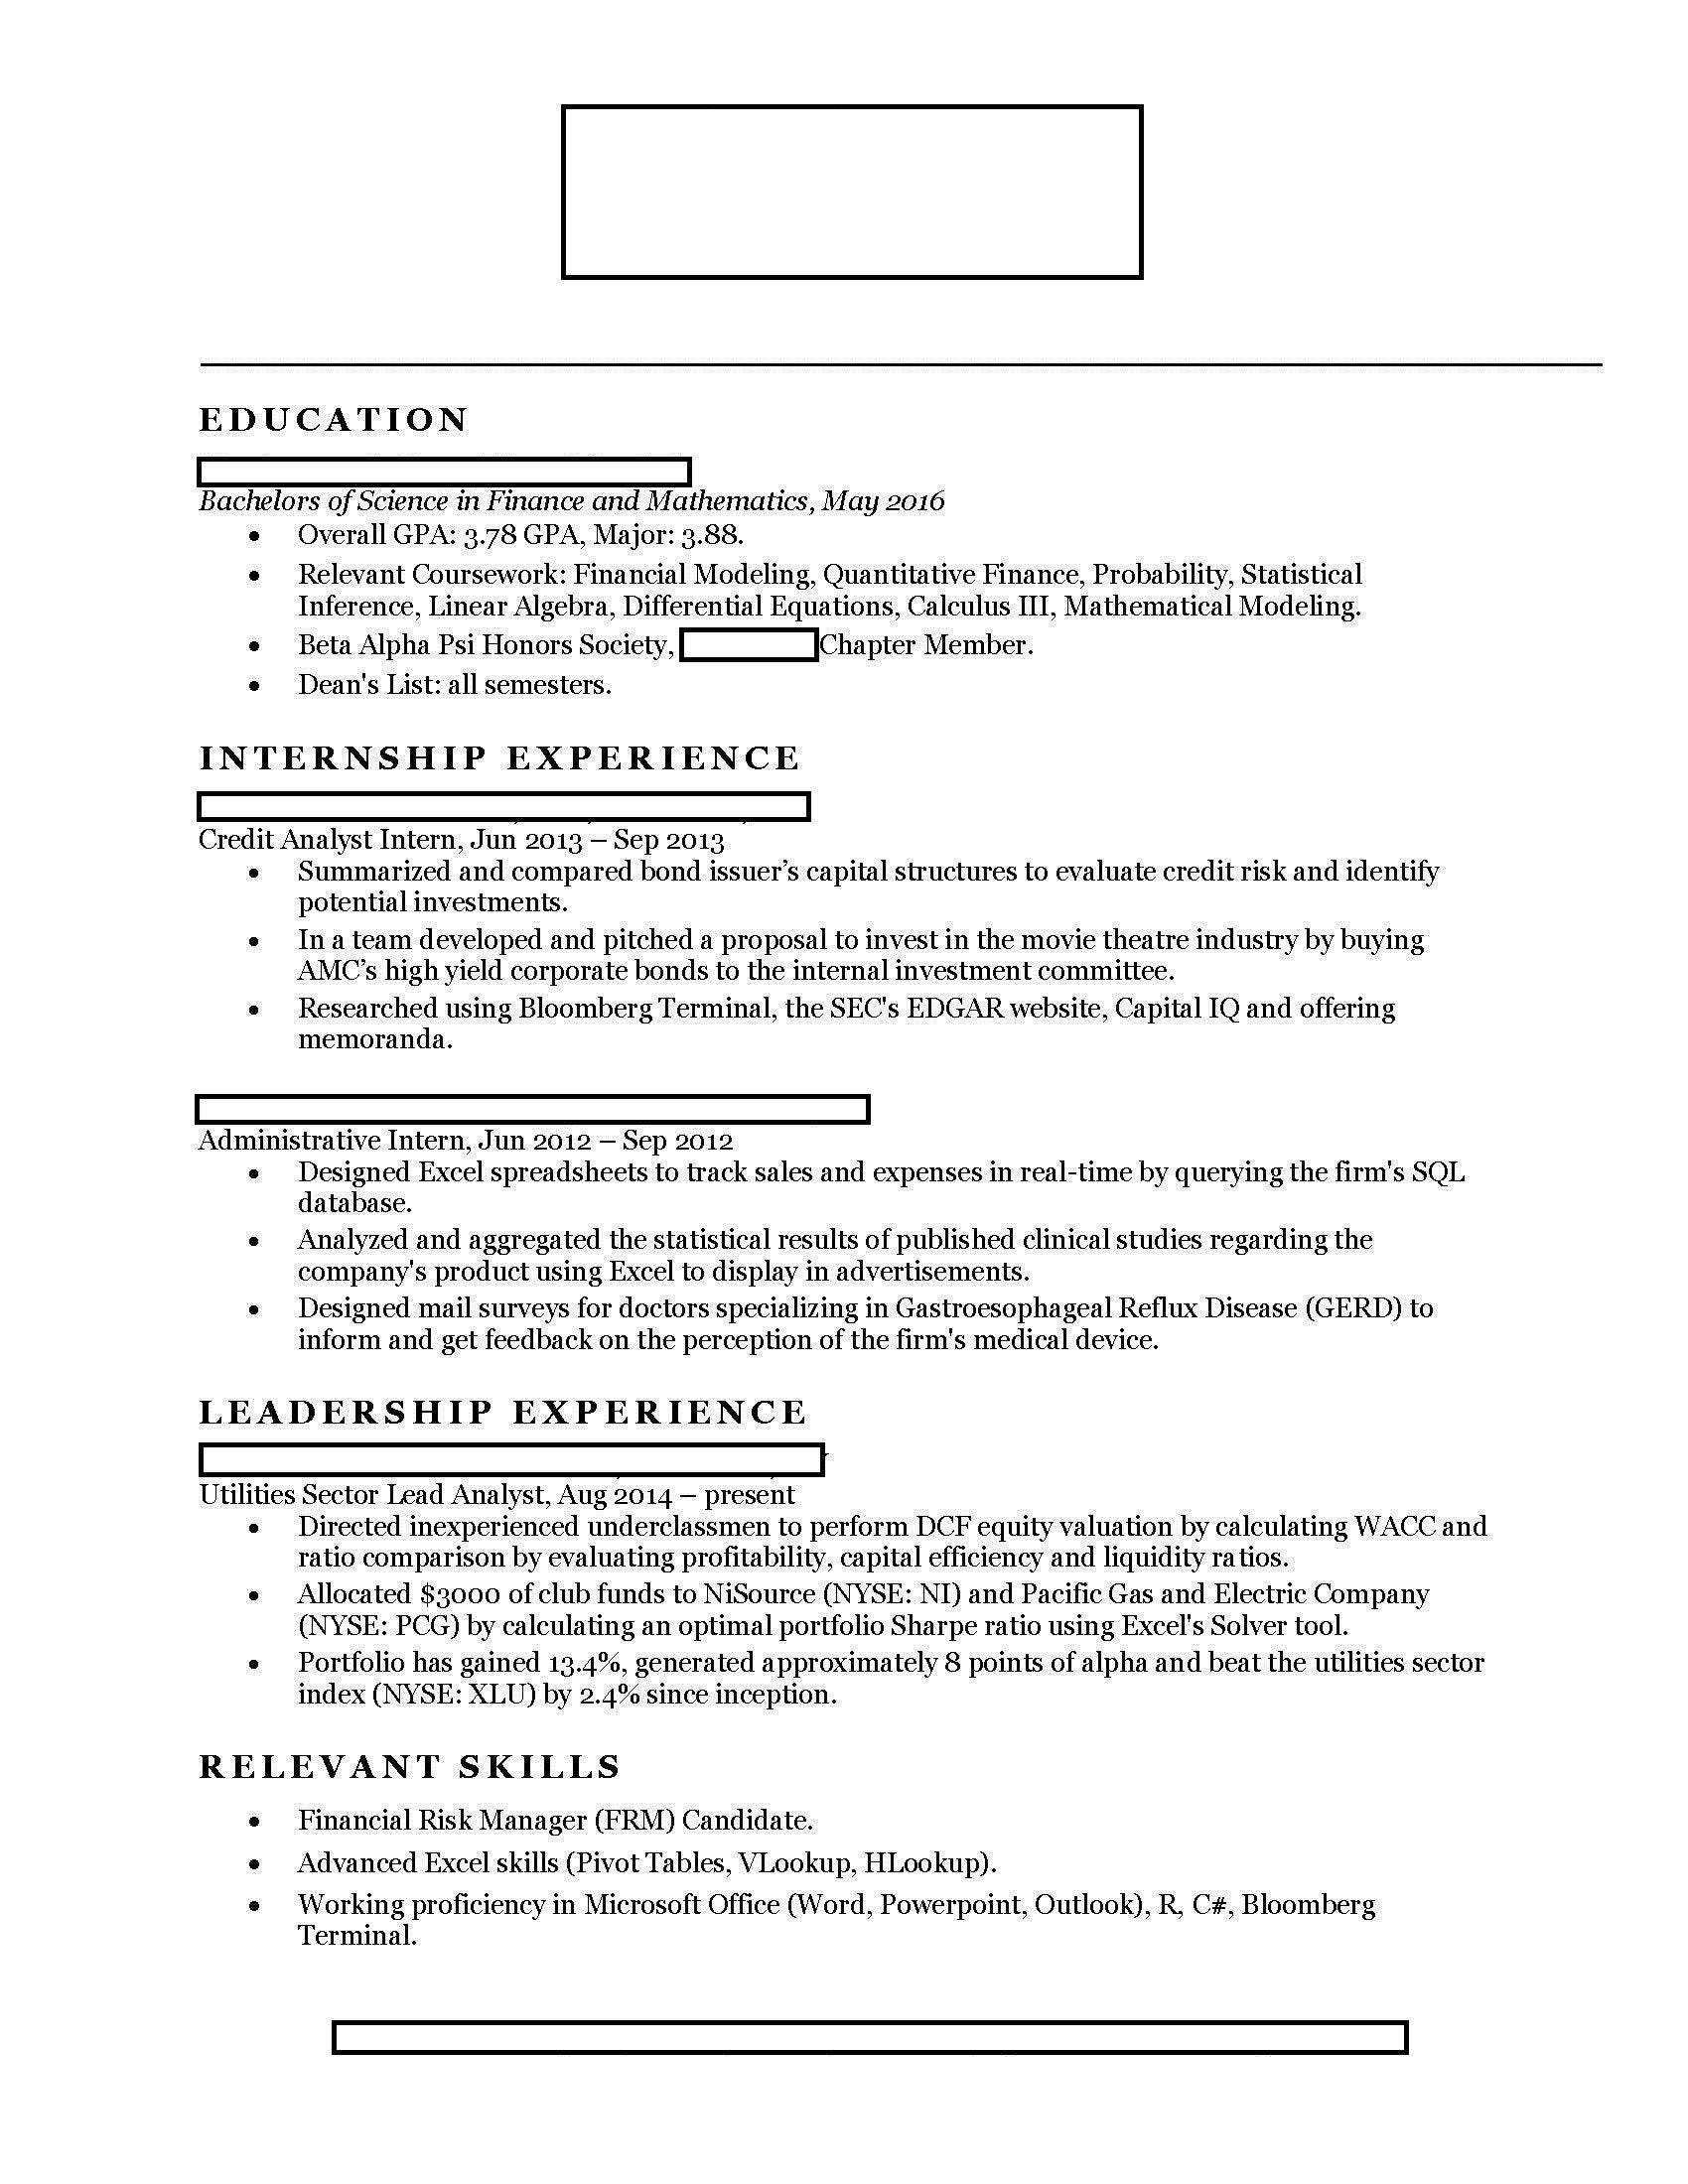 finance looking for internships in investment banking corporate financial services Resume Commercial Banking Resume Sample